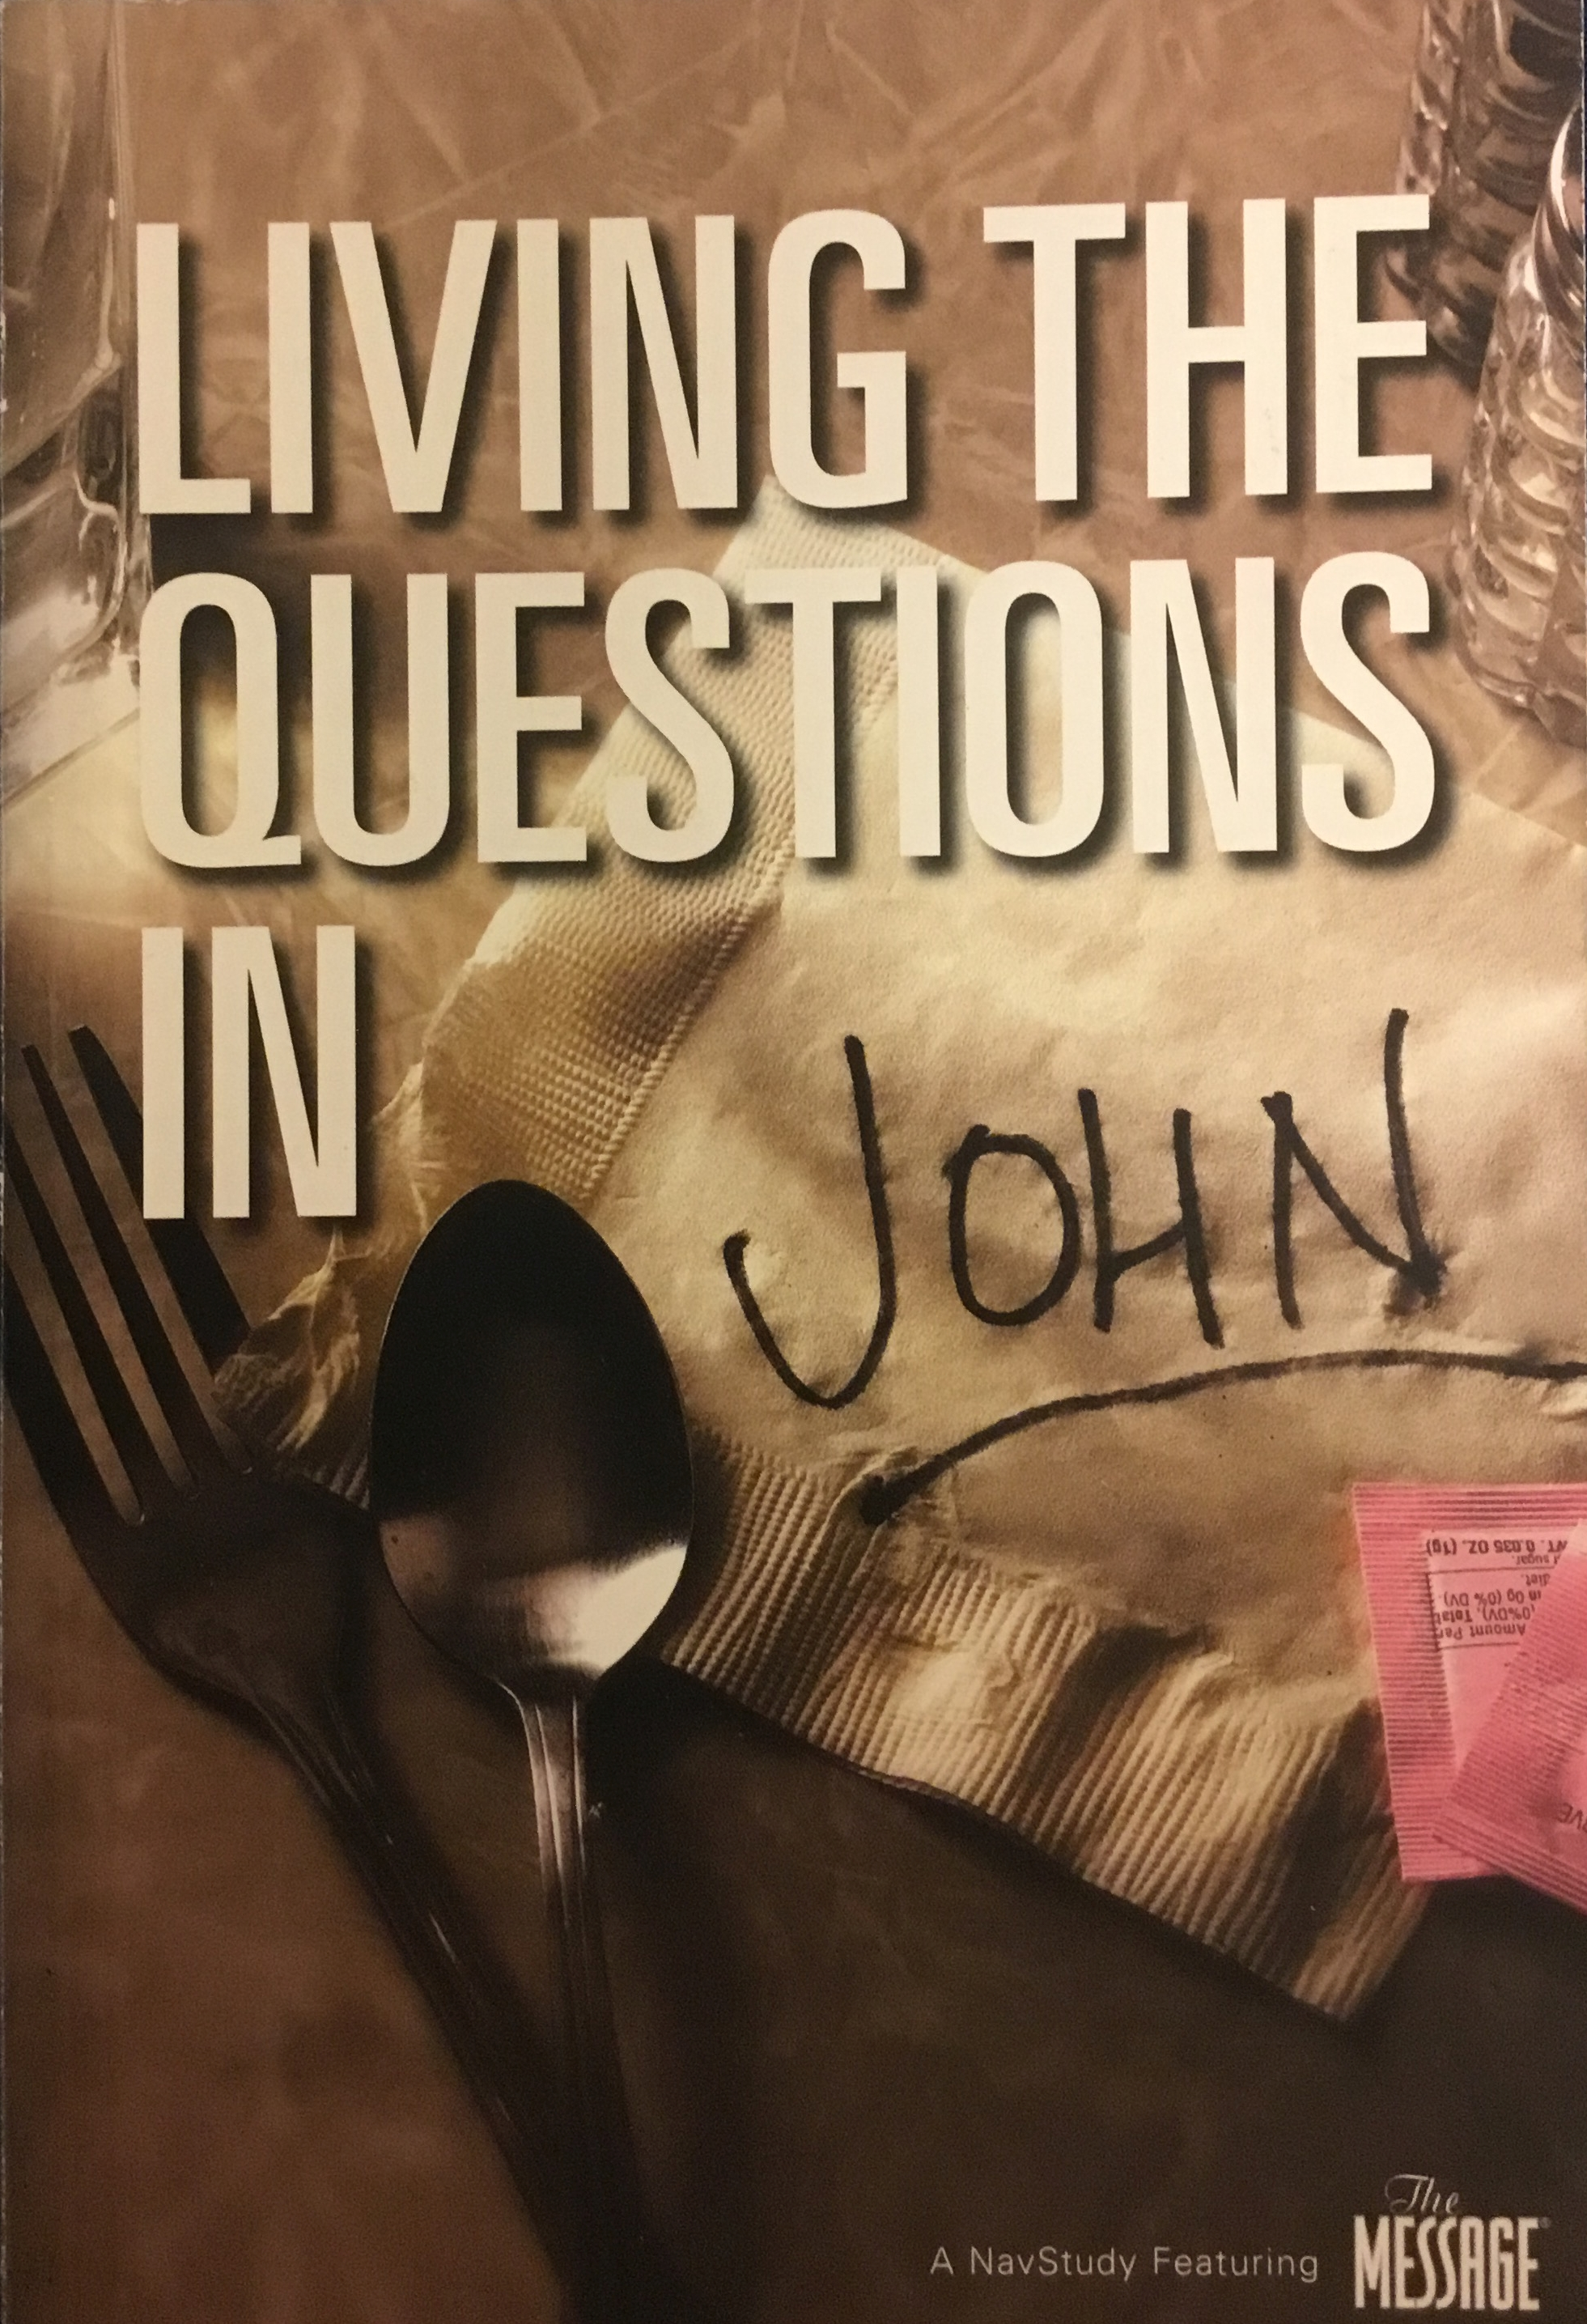 Living the questions - in John